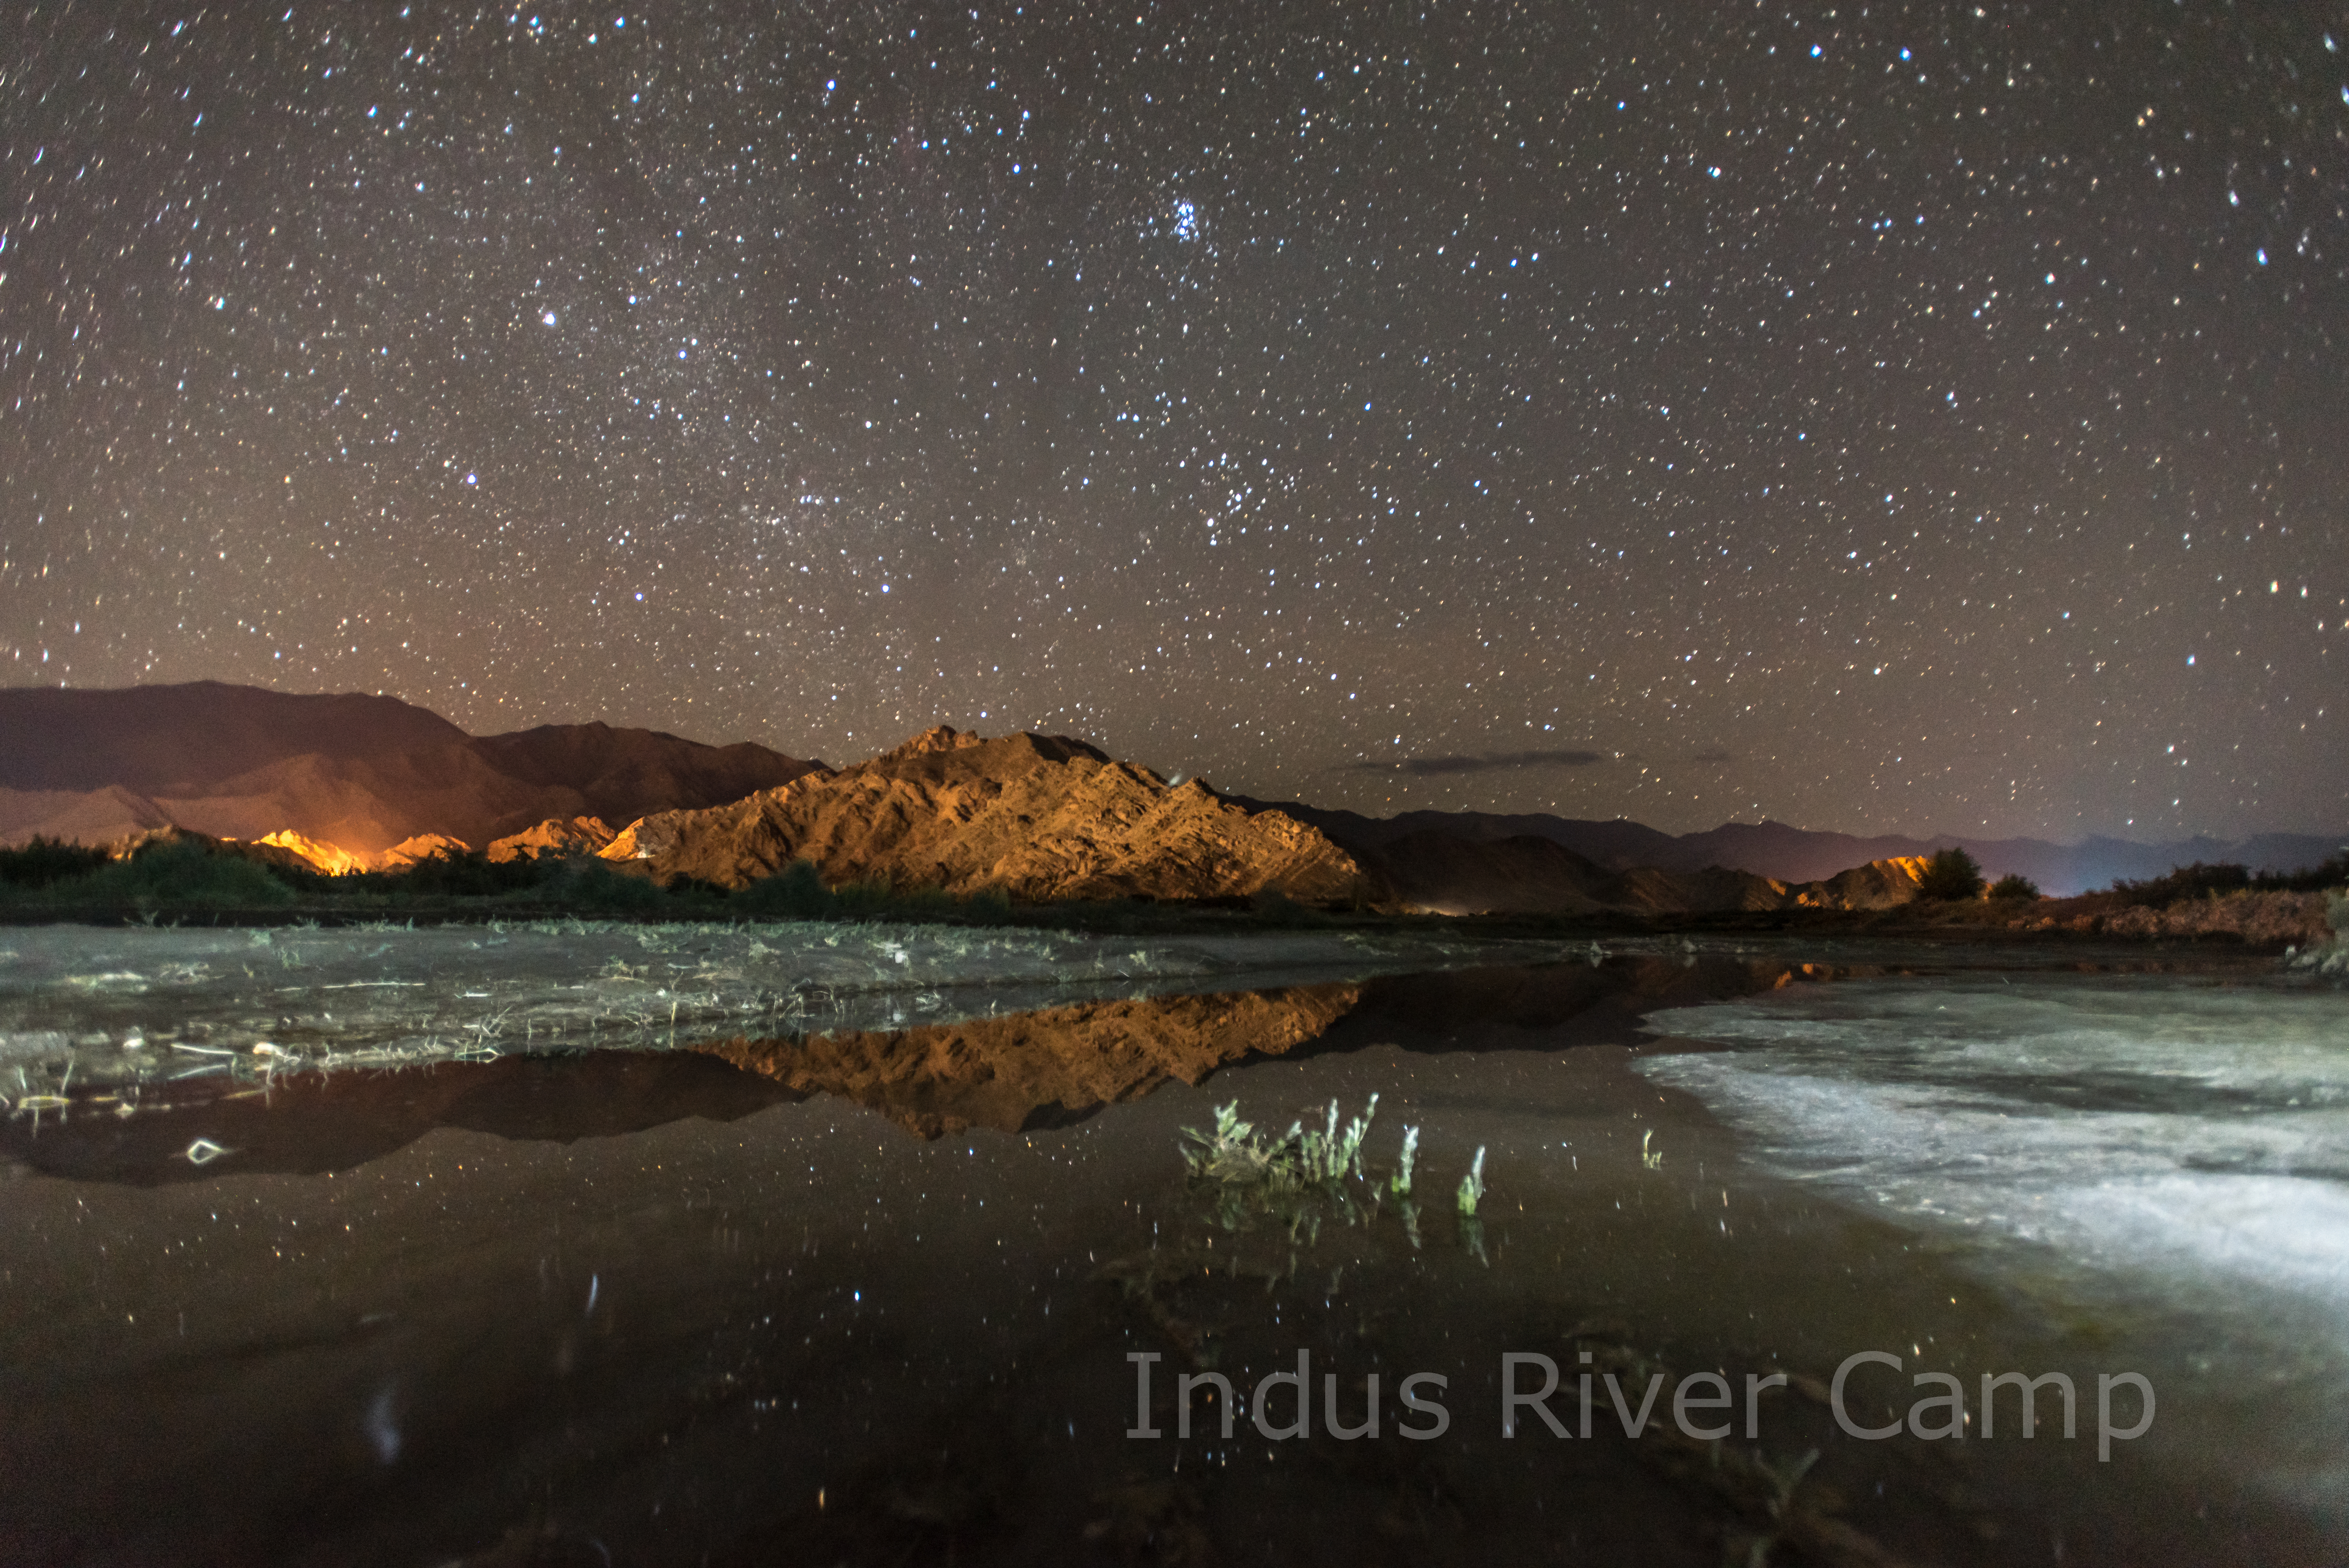 Indus River Camp at night